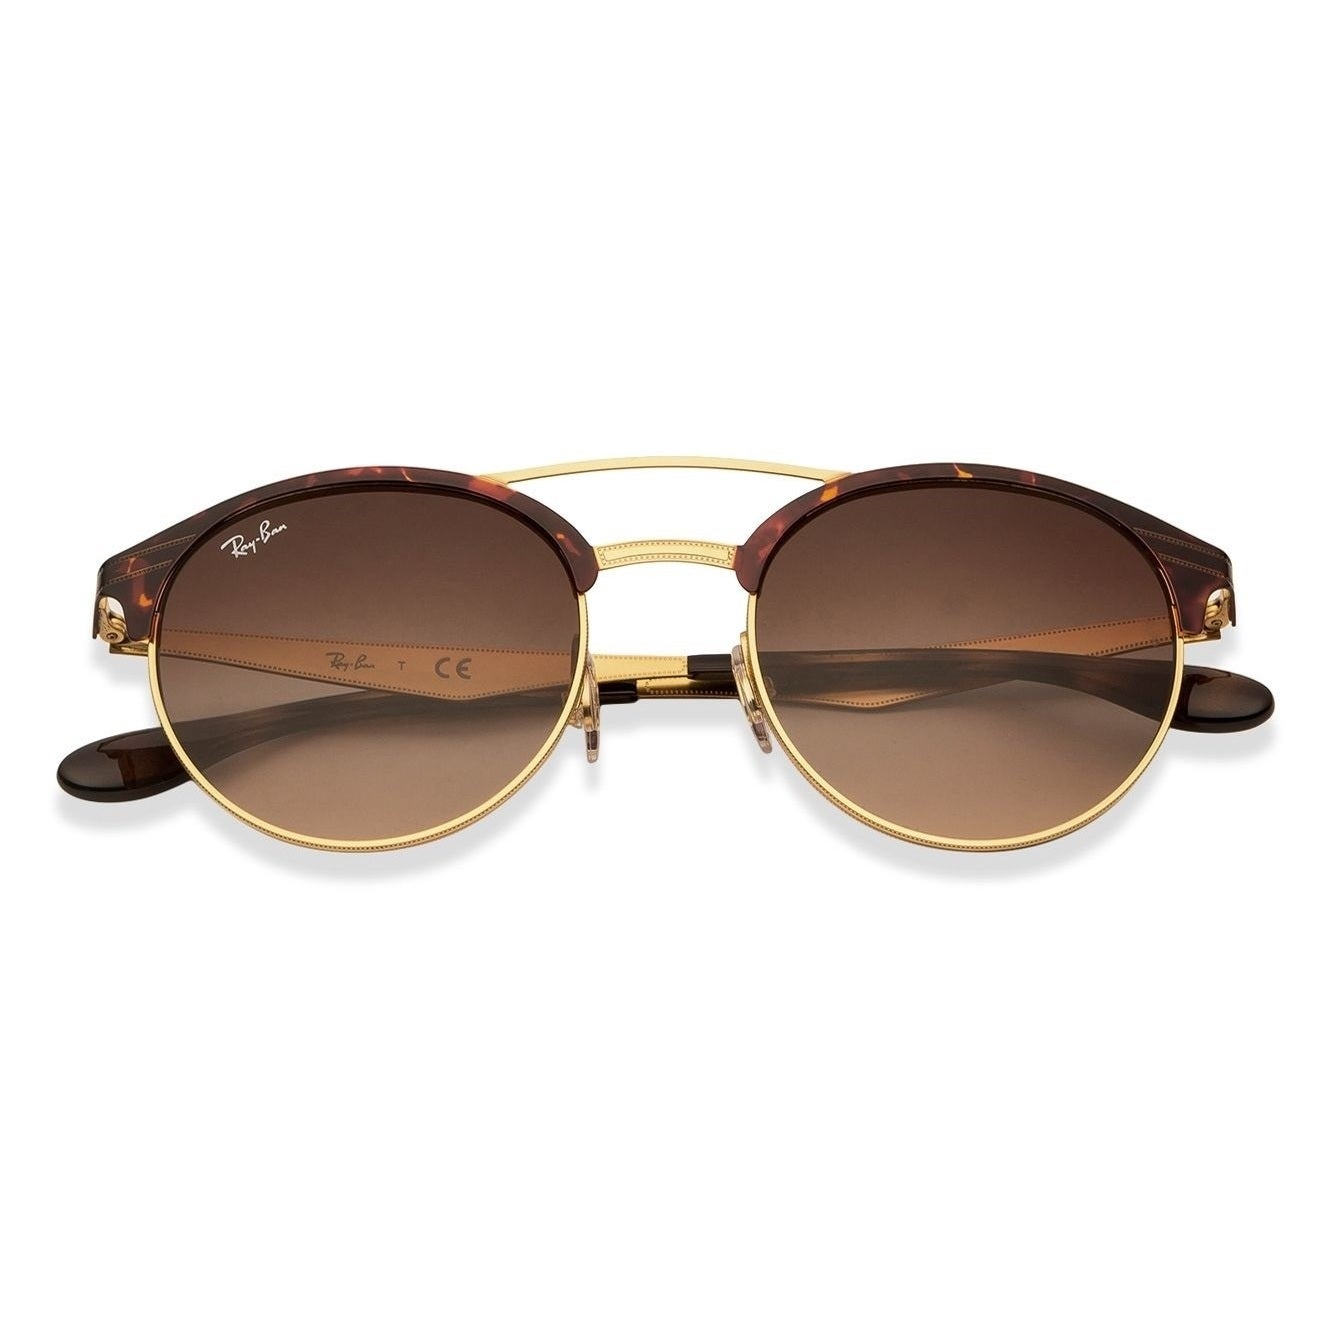 17e581cf56e Shop Ray-Ban RB3545 900813 Unisex Tortoise Gold Frame Brown Gradient Lens  Sunglasses - Free Shipping Today - Overstock - 15079153